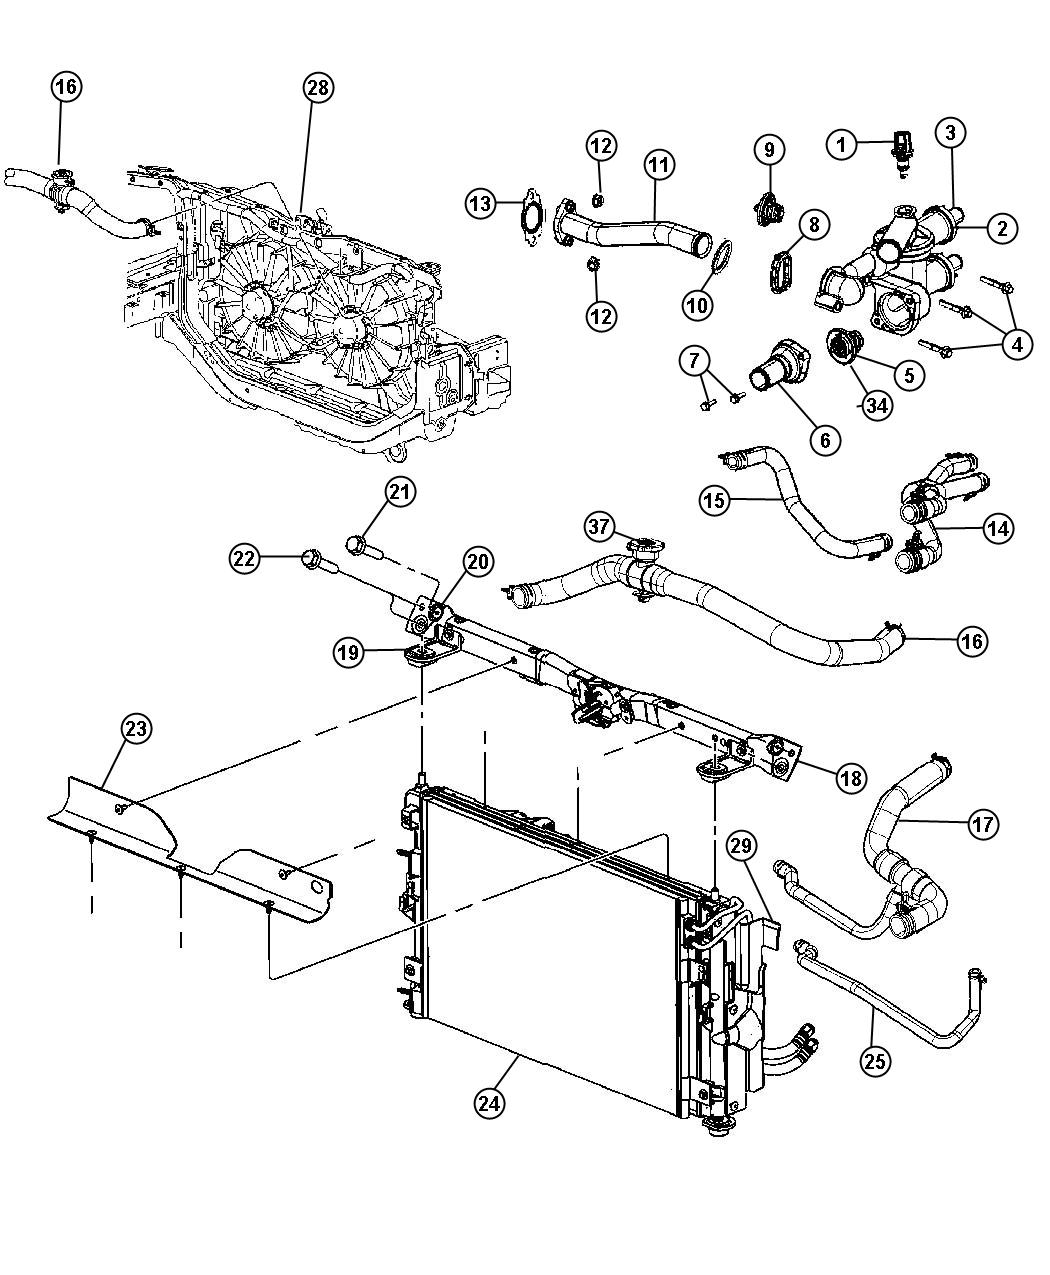 2007 dodge charger rt engine diagram